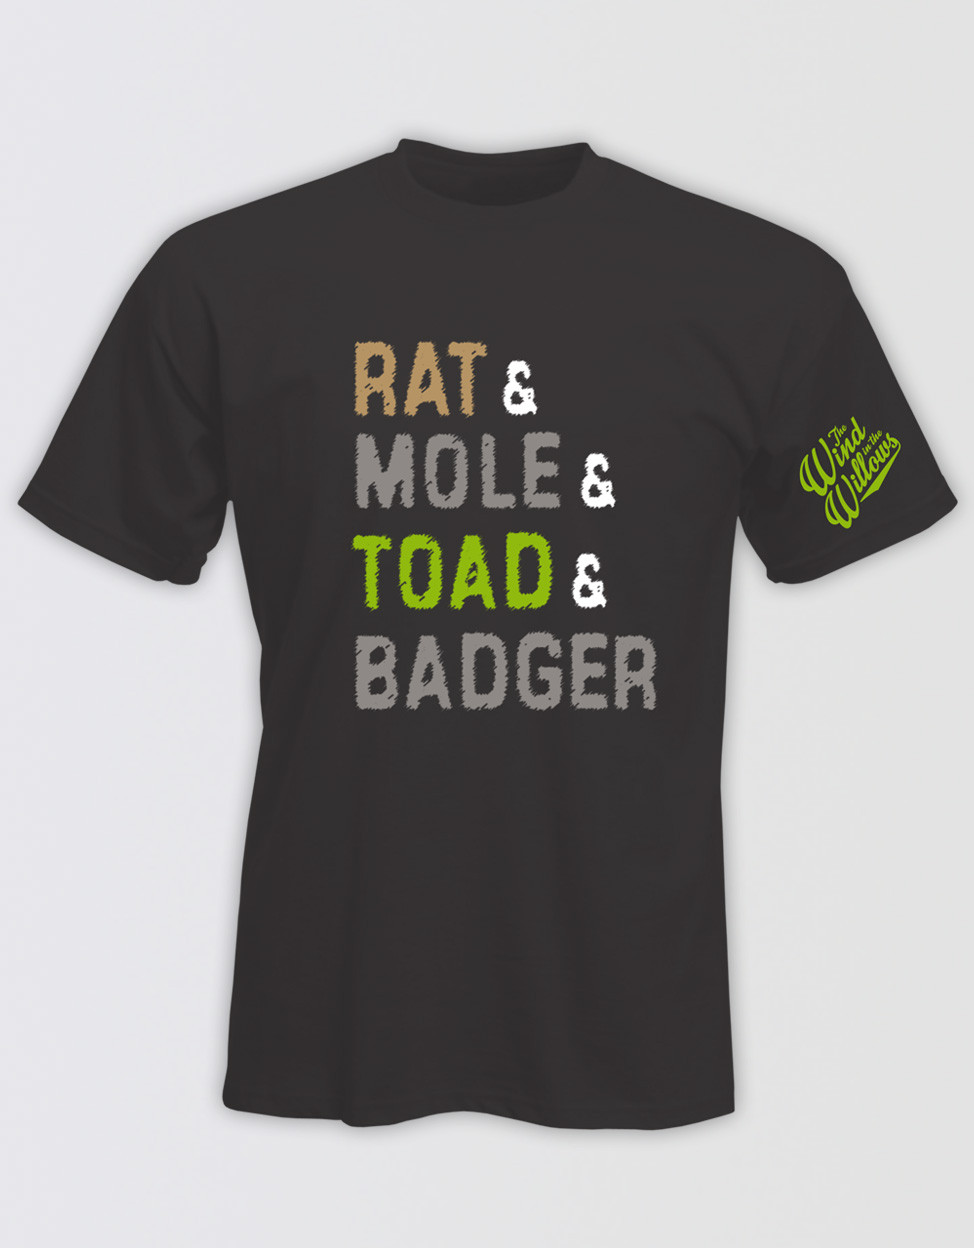 16045ed527c00 The Wind in the Willows 'Rat & Mole & Toad & Badger' Kids T-Shirt